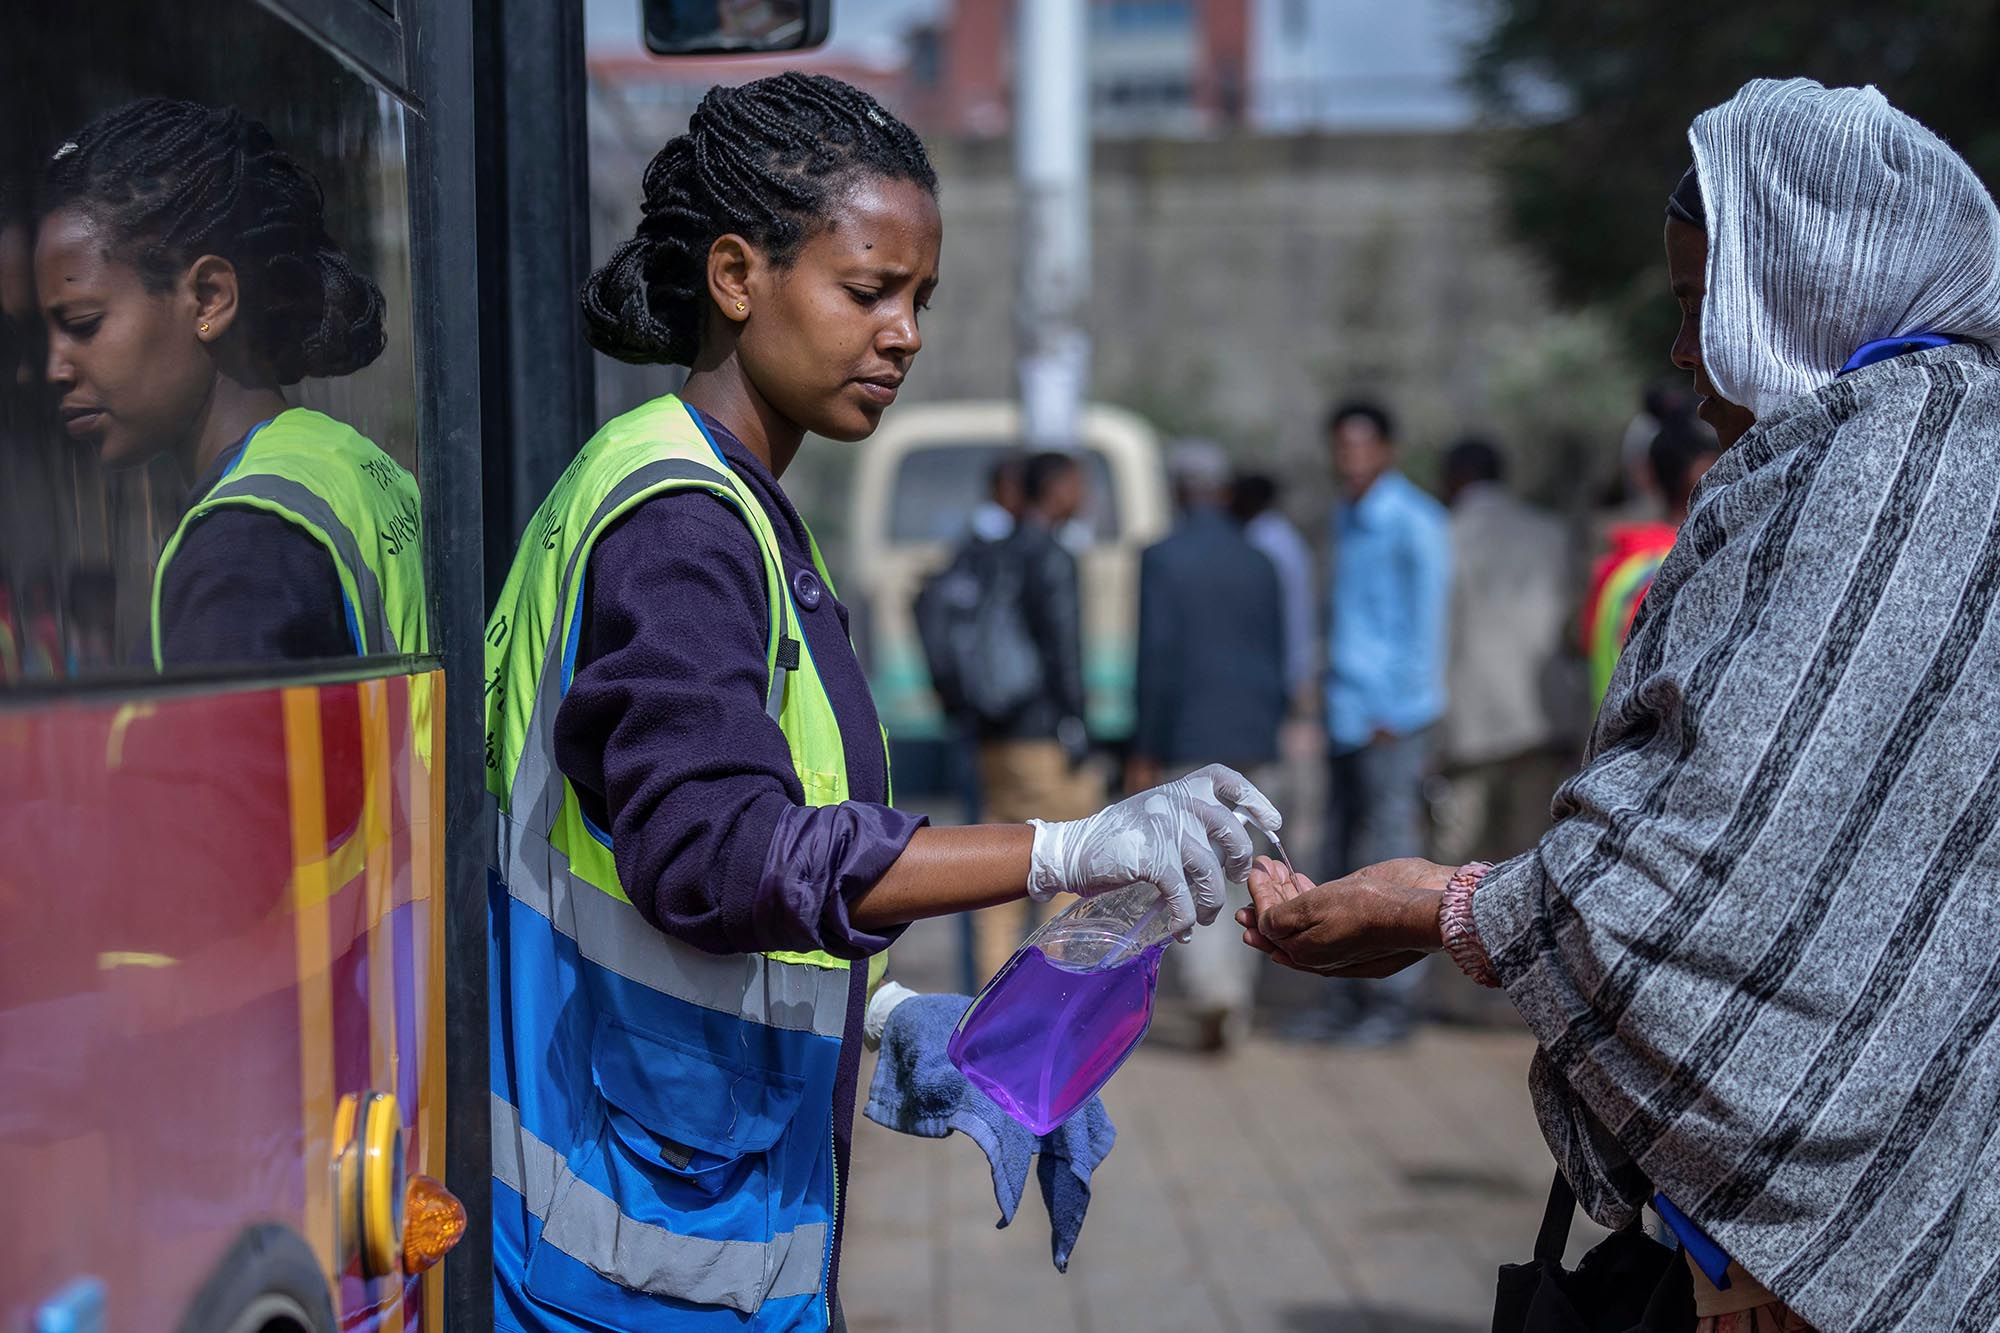 Volunteer provides hand sanitizer to passengers entering a bus as a precaution against the spread of the new coronavirus in the capital Addis Ababa, Ethiopia .